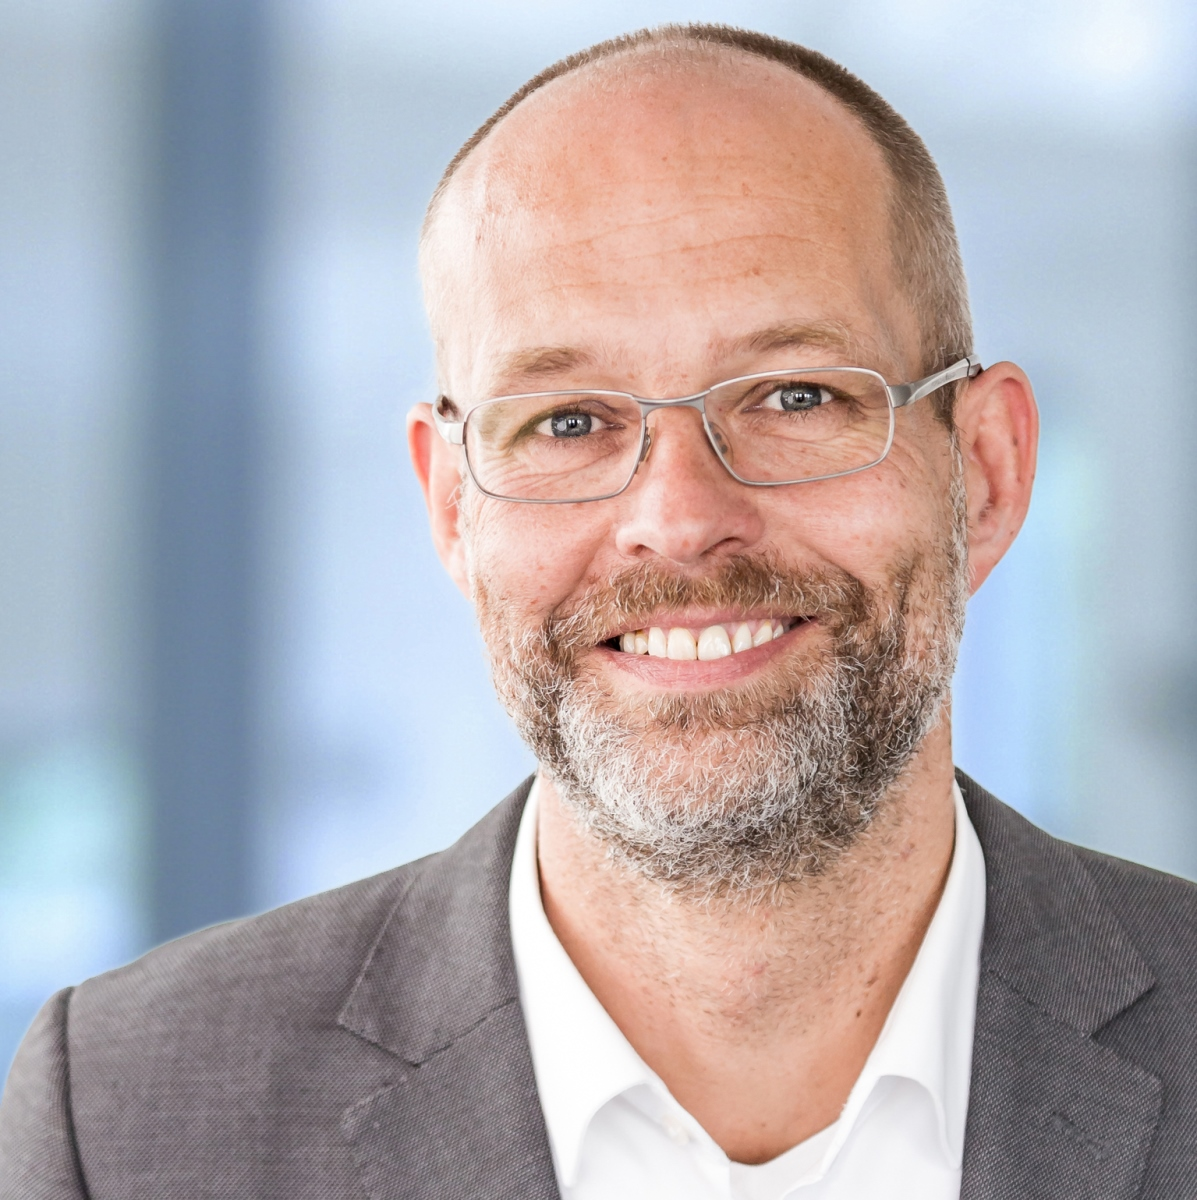 Hanno Bertling, Senior Product Manager Closures bei SIG